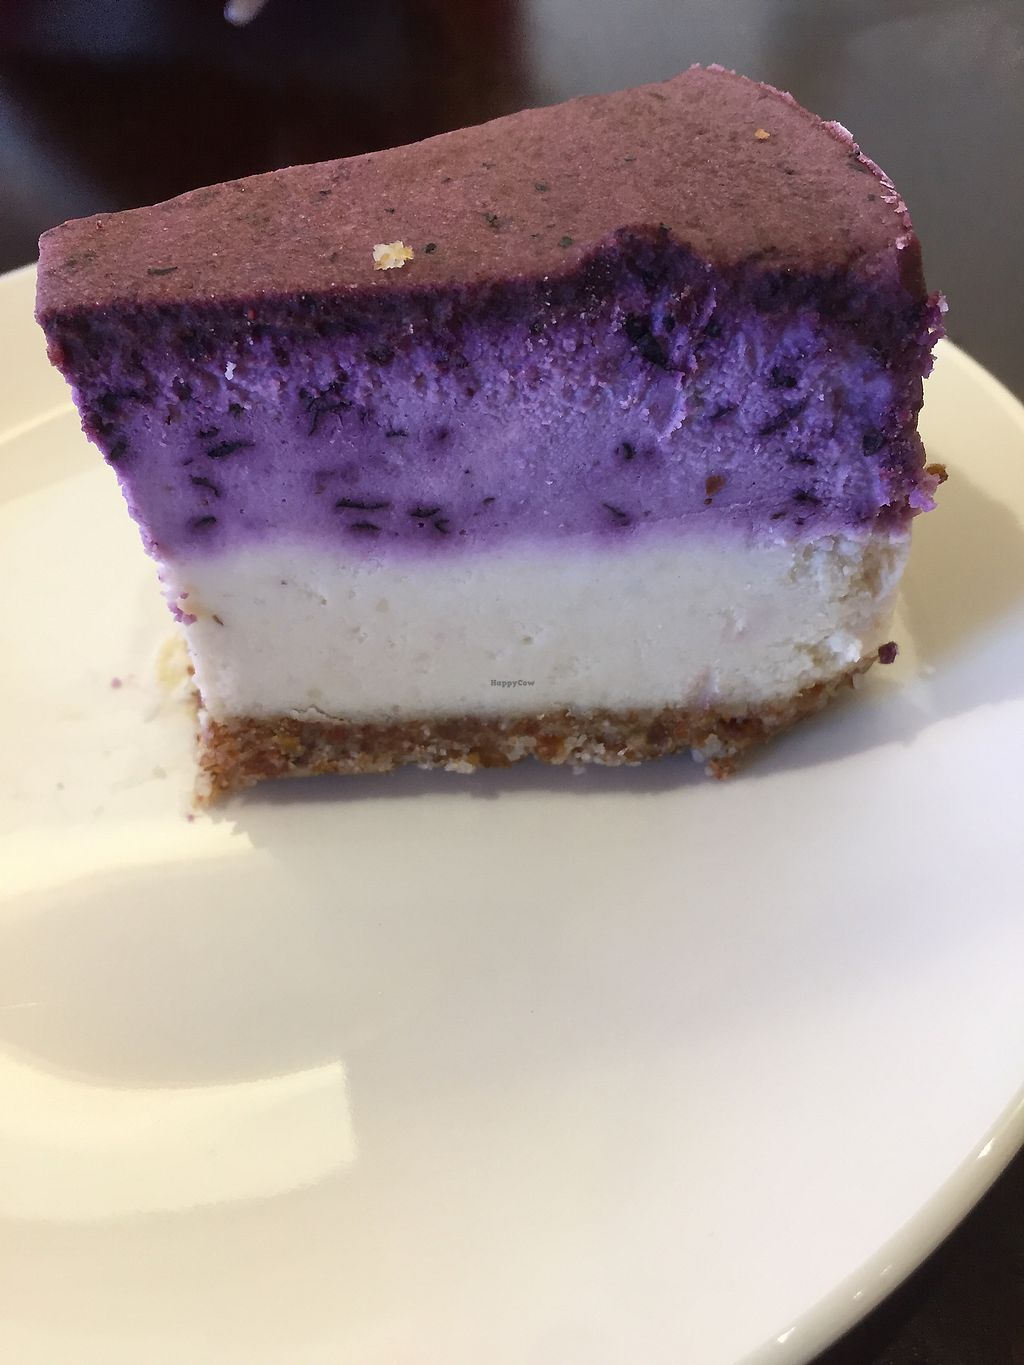 """Photo of Oh My Greens  by <a href=""""/members/profile/bruna.sefrin"""">bruna.sefrin</a> <br/>Vegan cheesecake  <br/> December 10, 2017  - <a href='/contact/abuse/image/100038/334444'>Report</a>"""